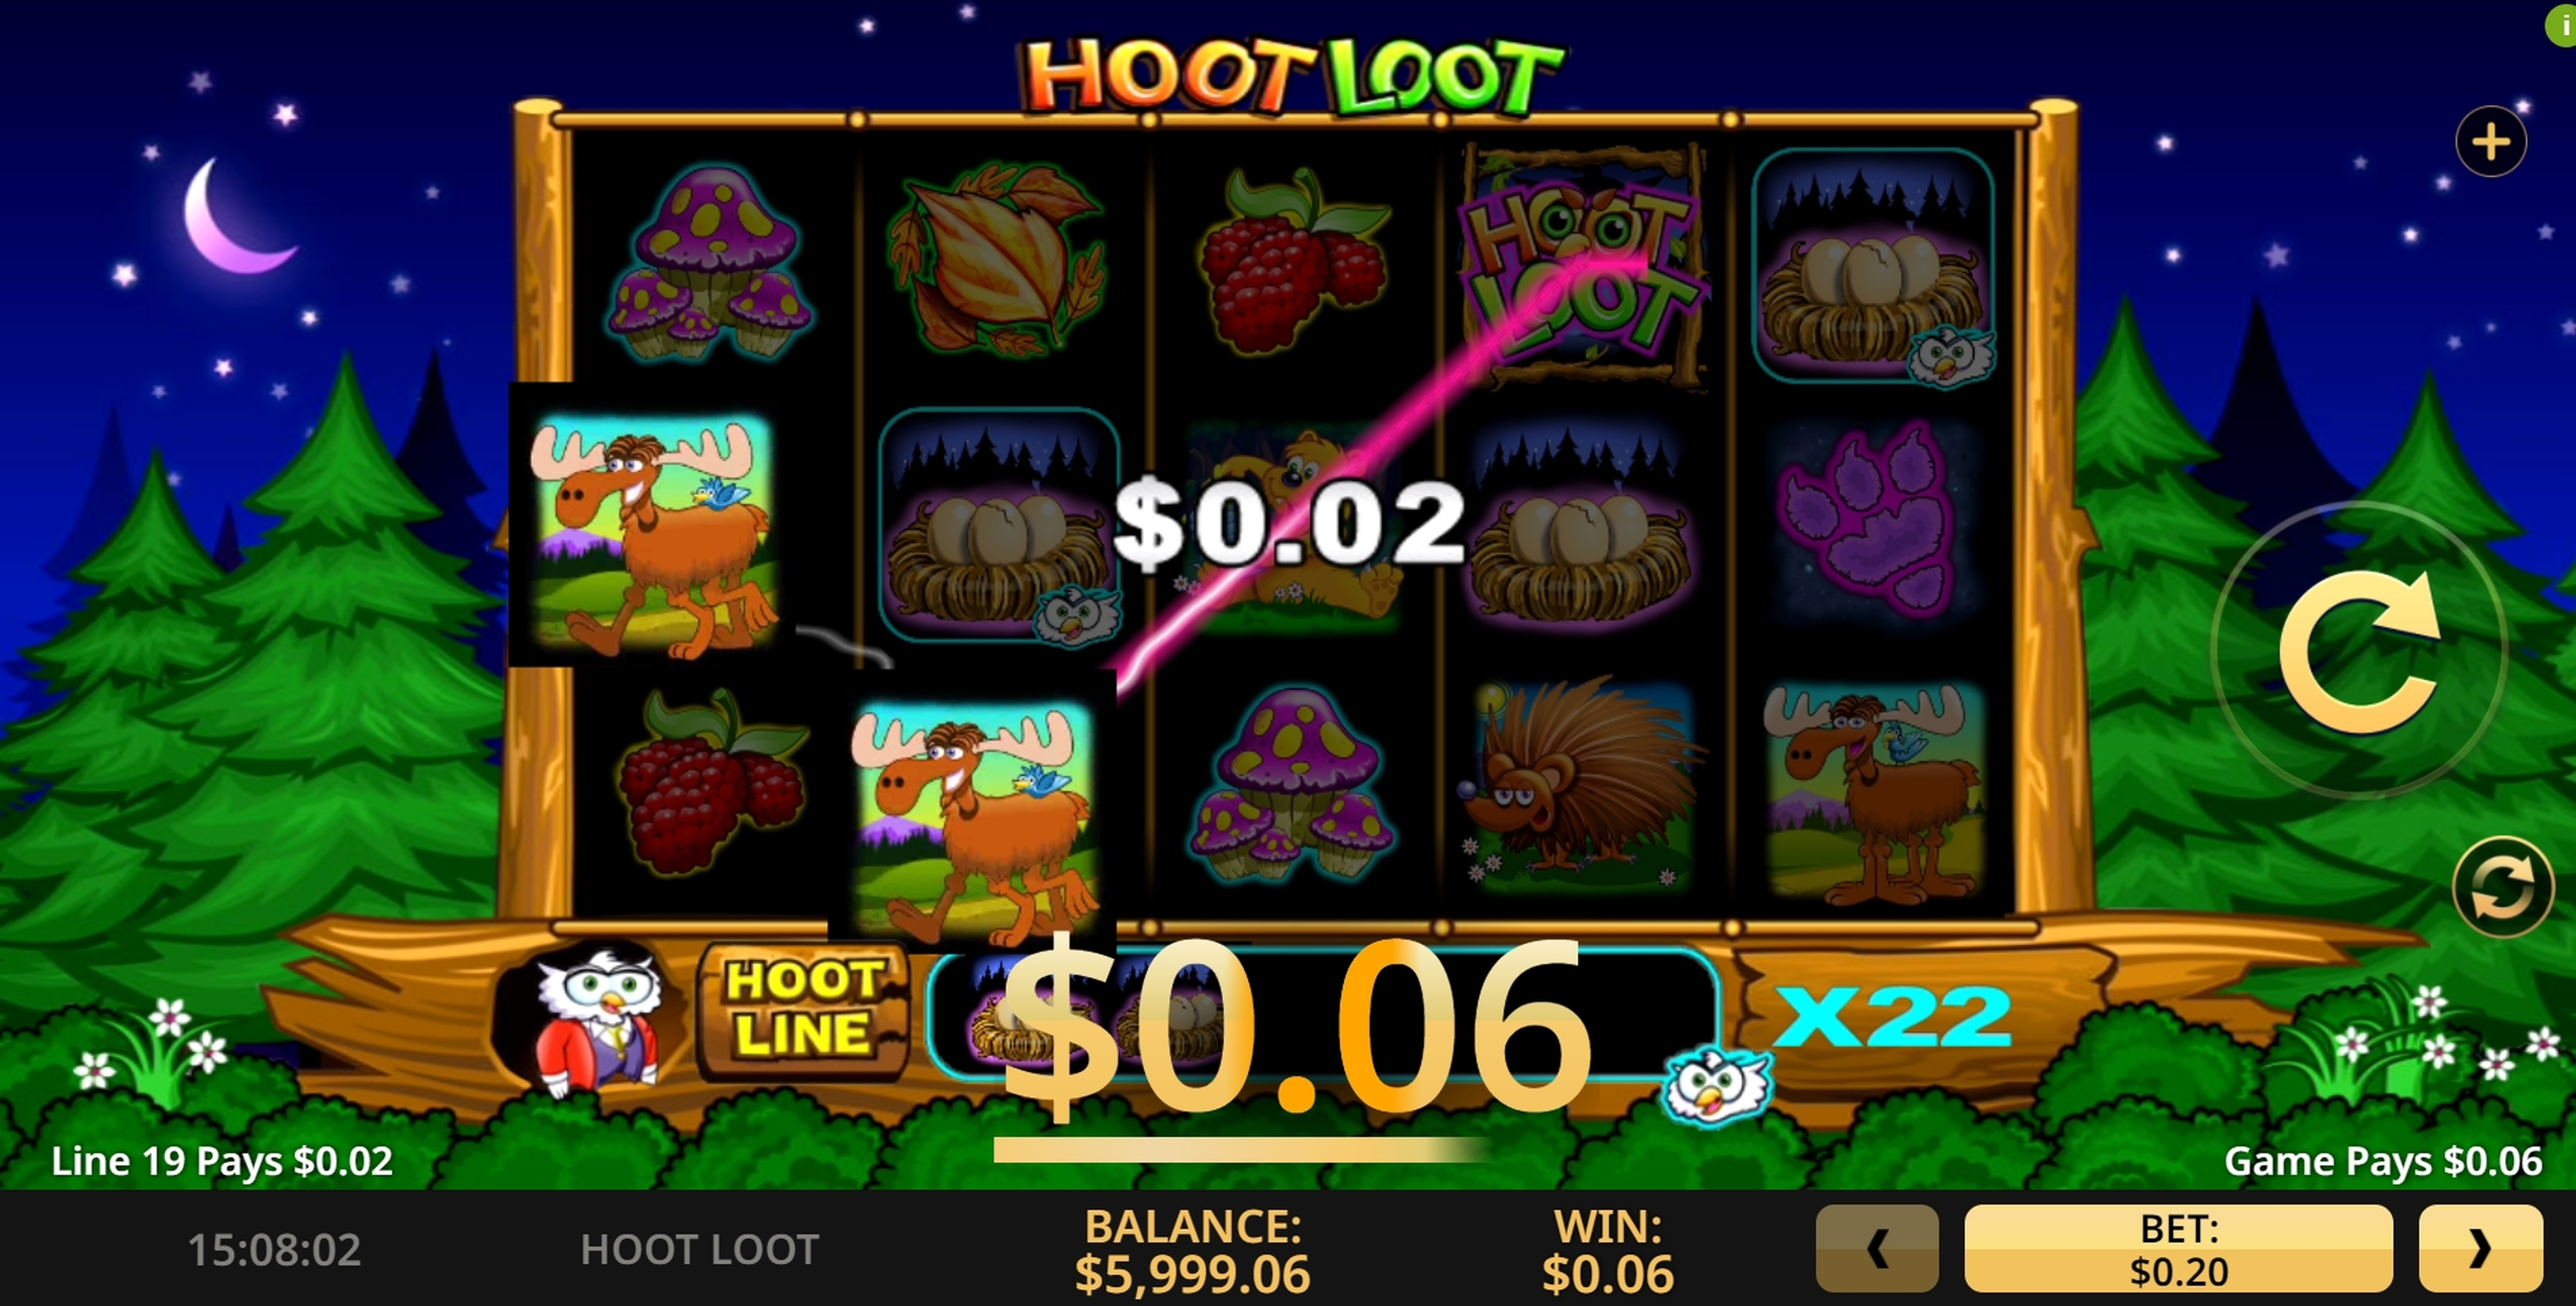 Win Money in Hoot Loot Free Slot Game by High 5 Games